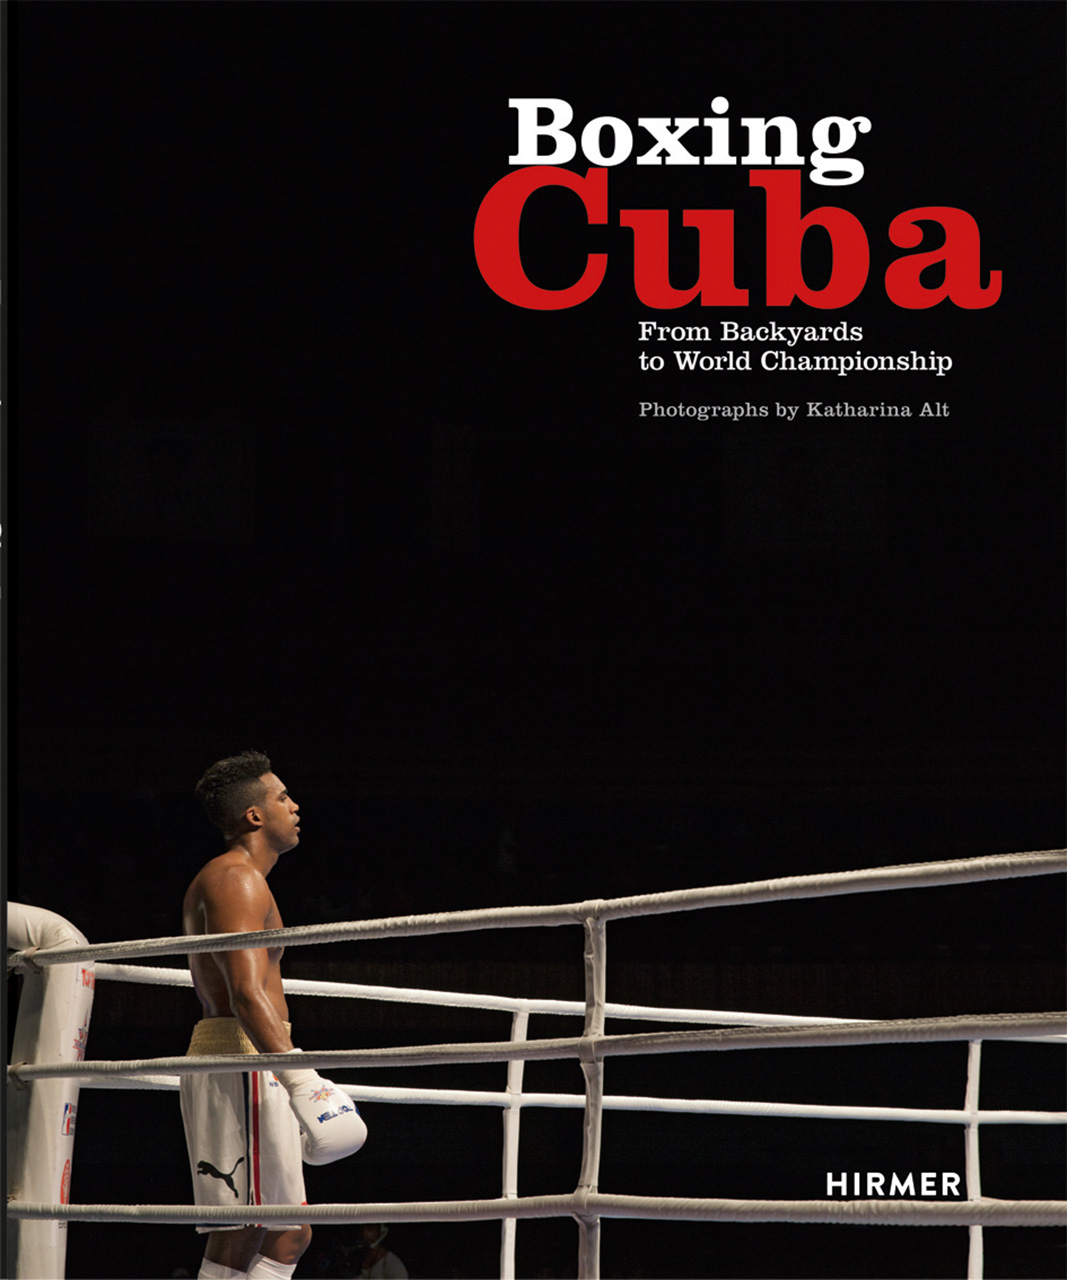 Boxing Cuba: From Backyards to World Championship